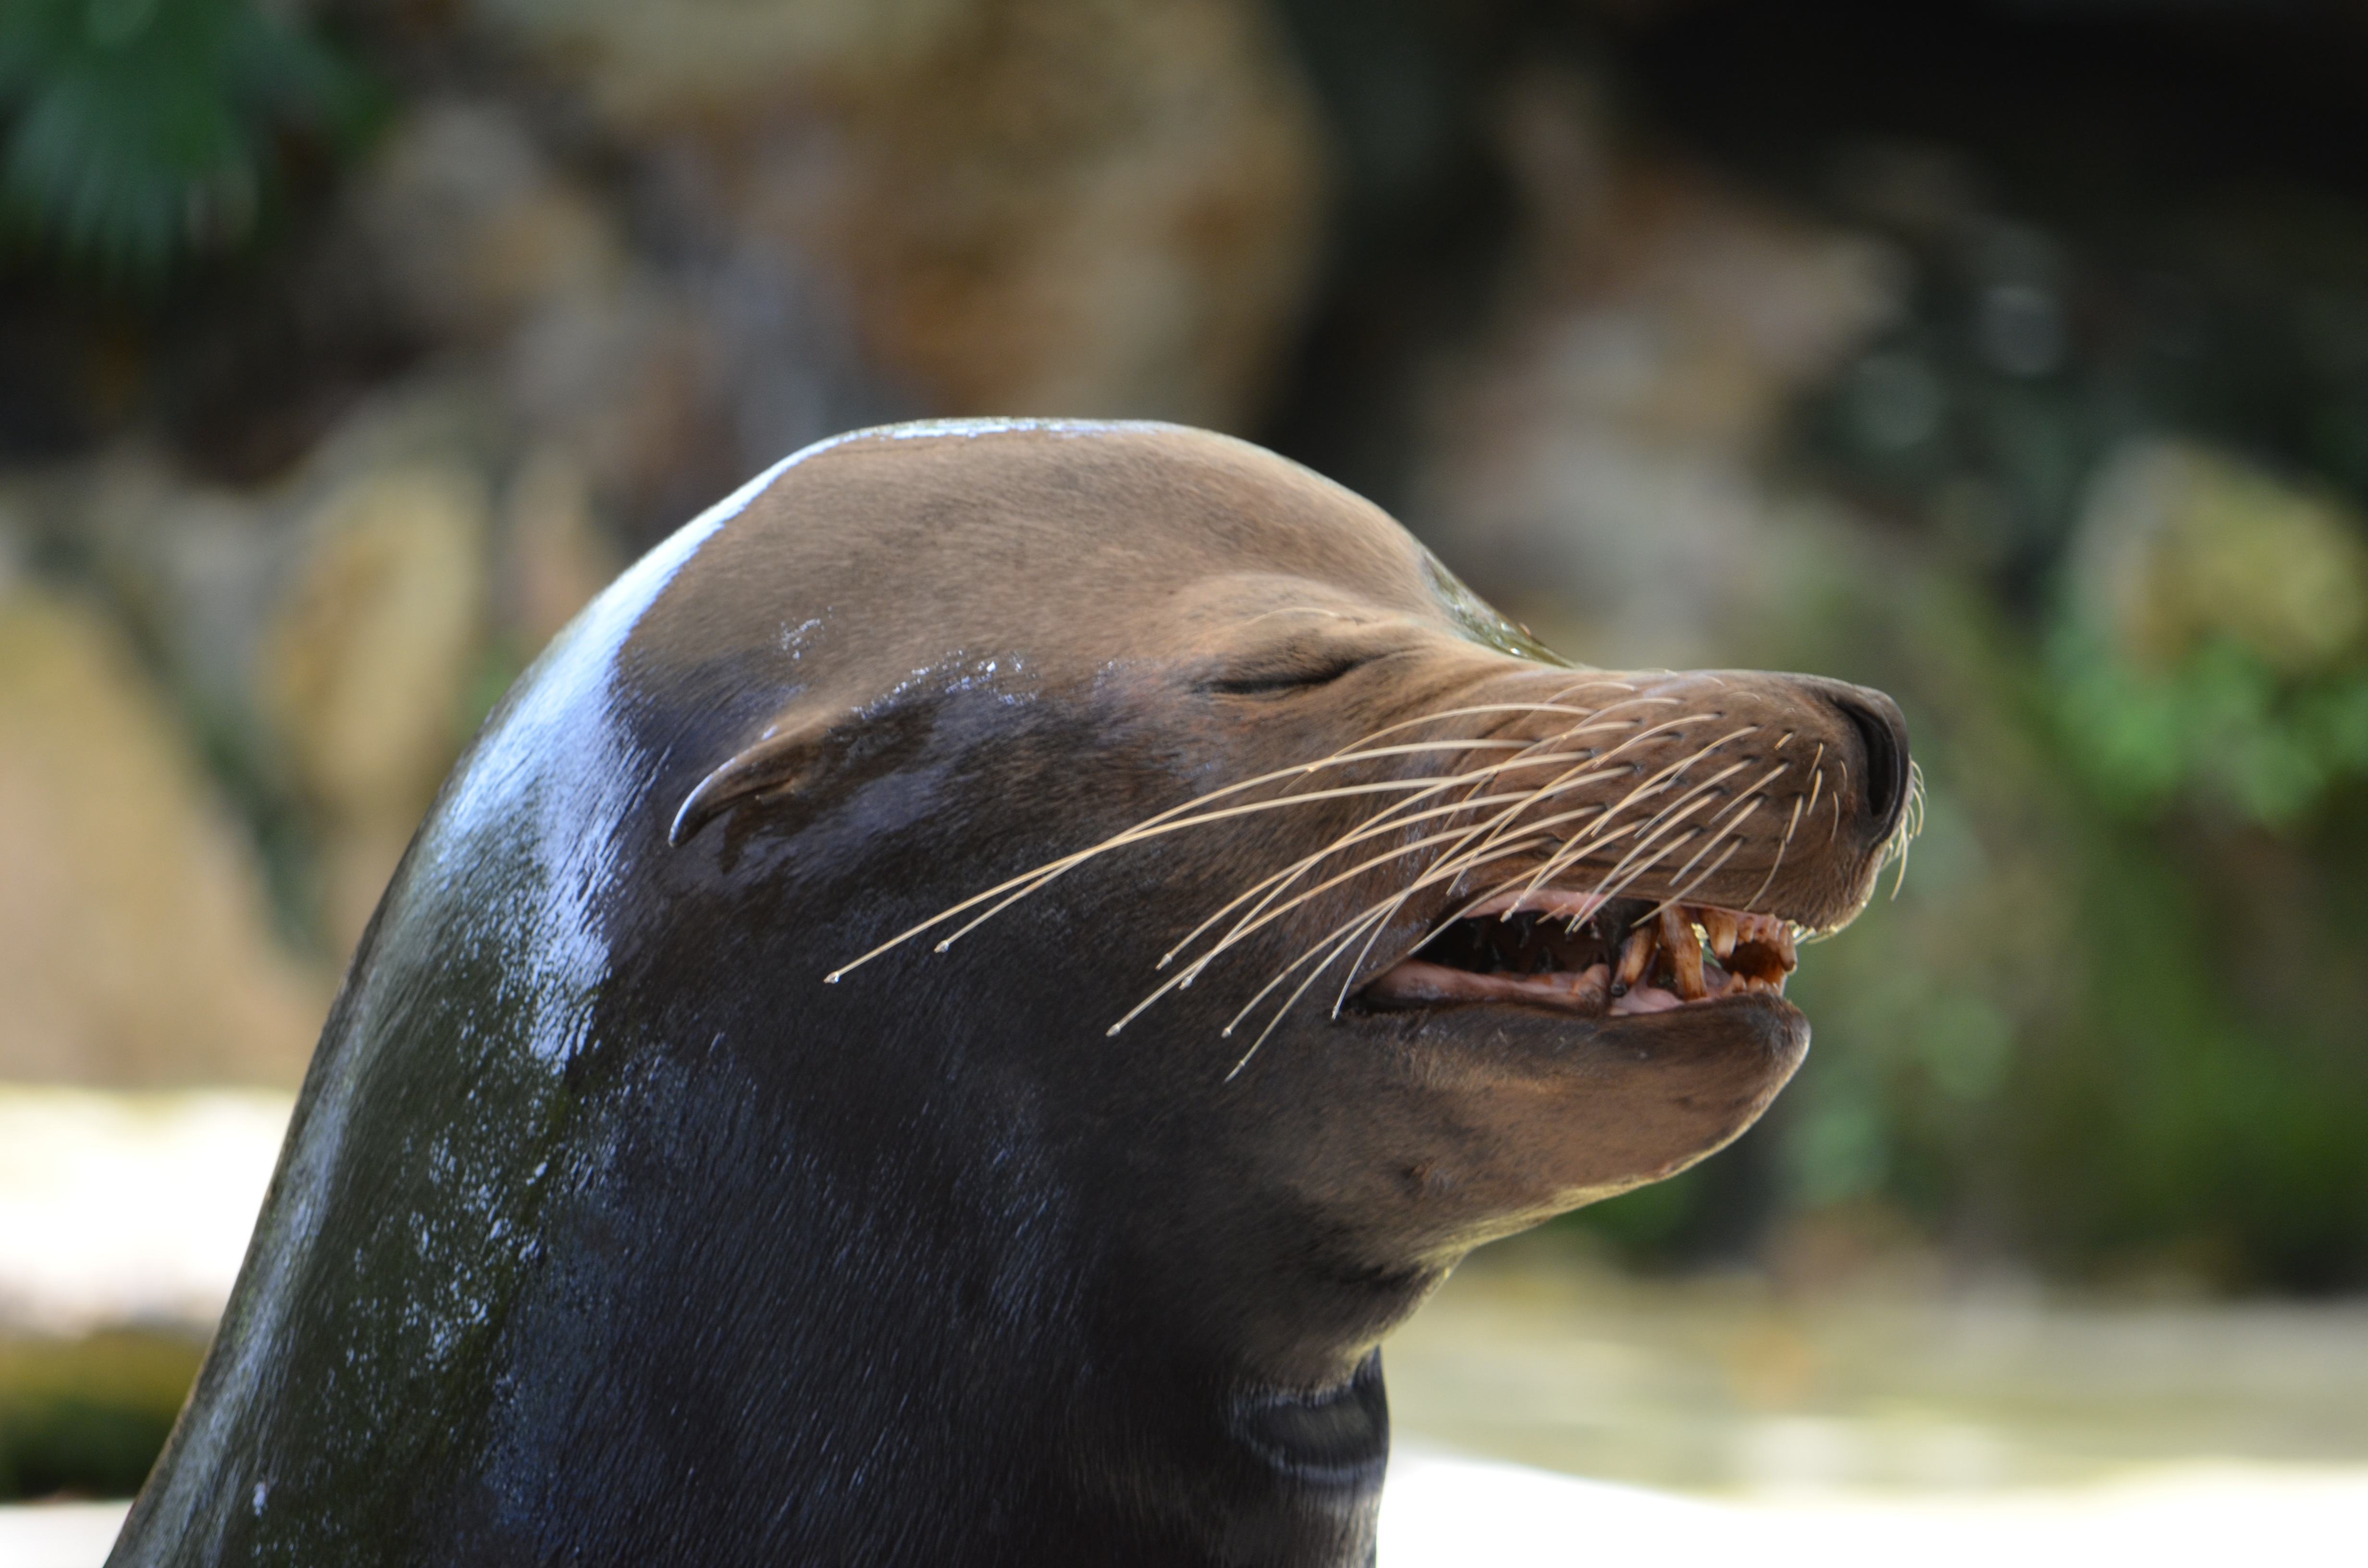 131816 download wallpaper Animals, Muzzle, Wet, Emotions, Sea Lion screensavers and pictures for free